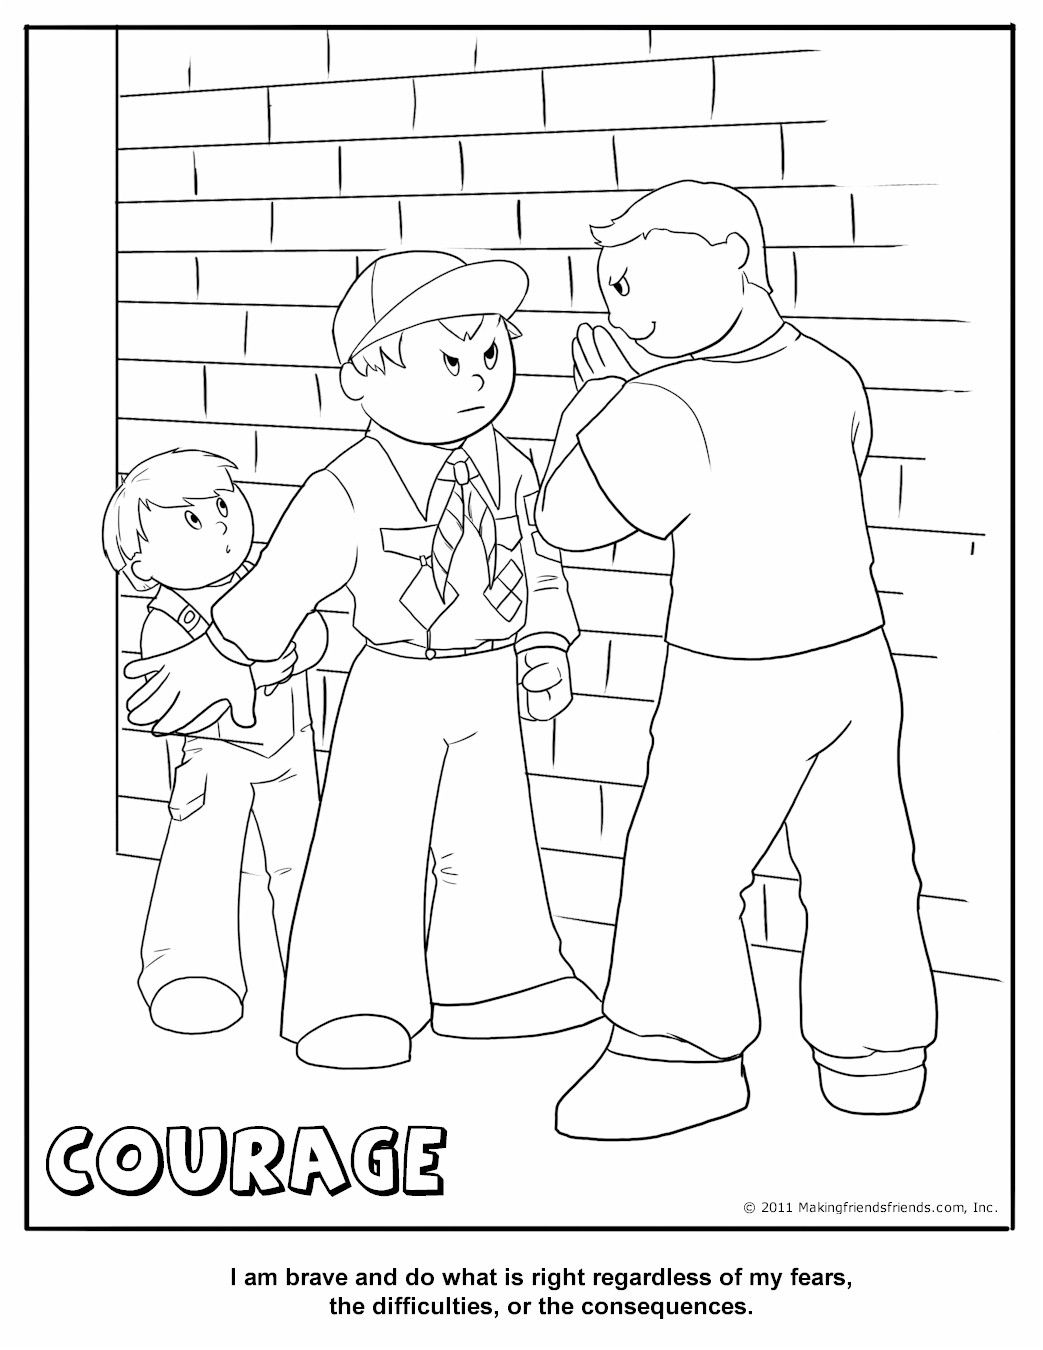 Cub Scout Courage Coloring Page Other Pages At